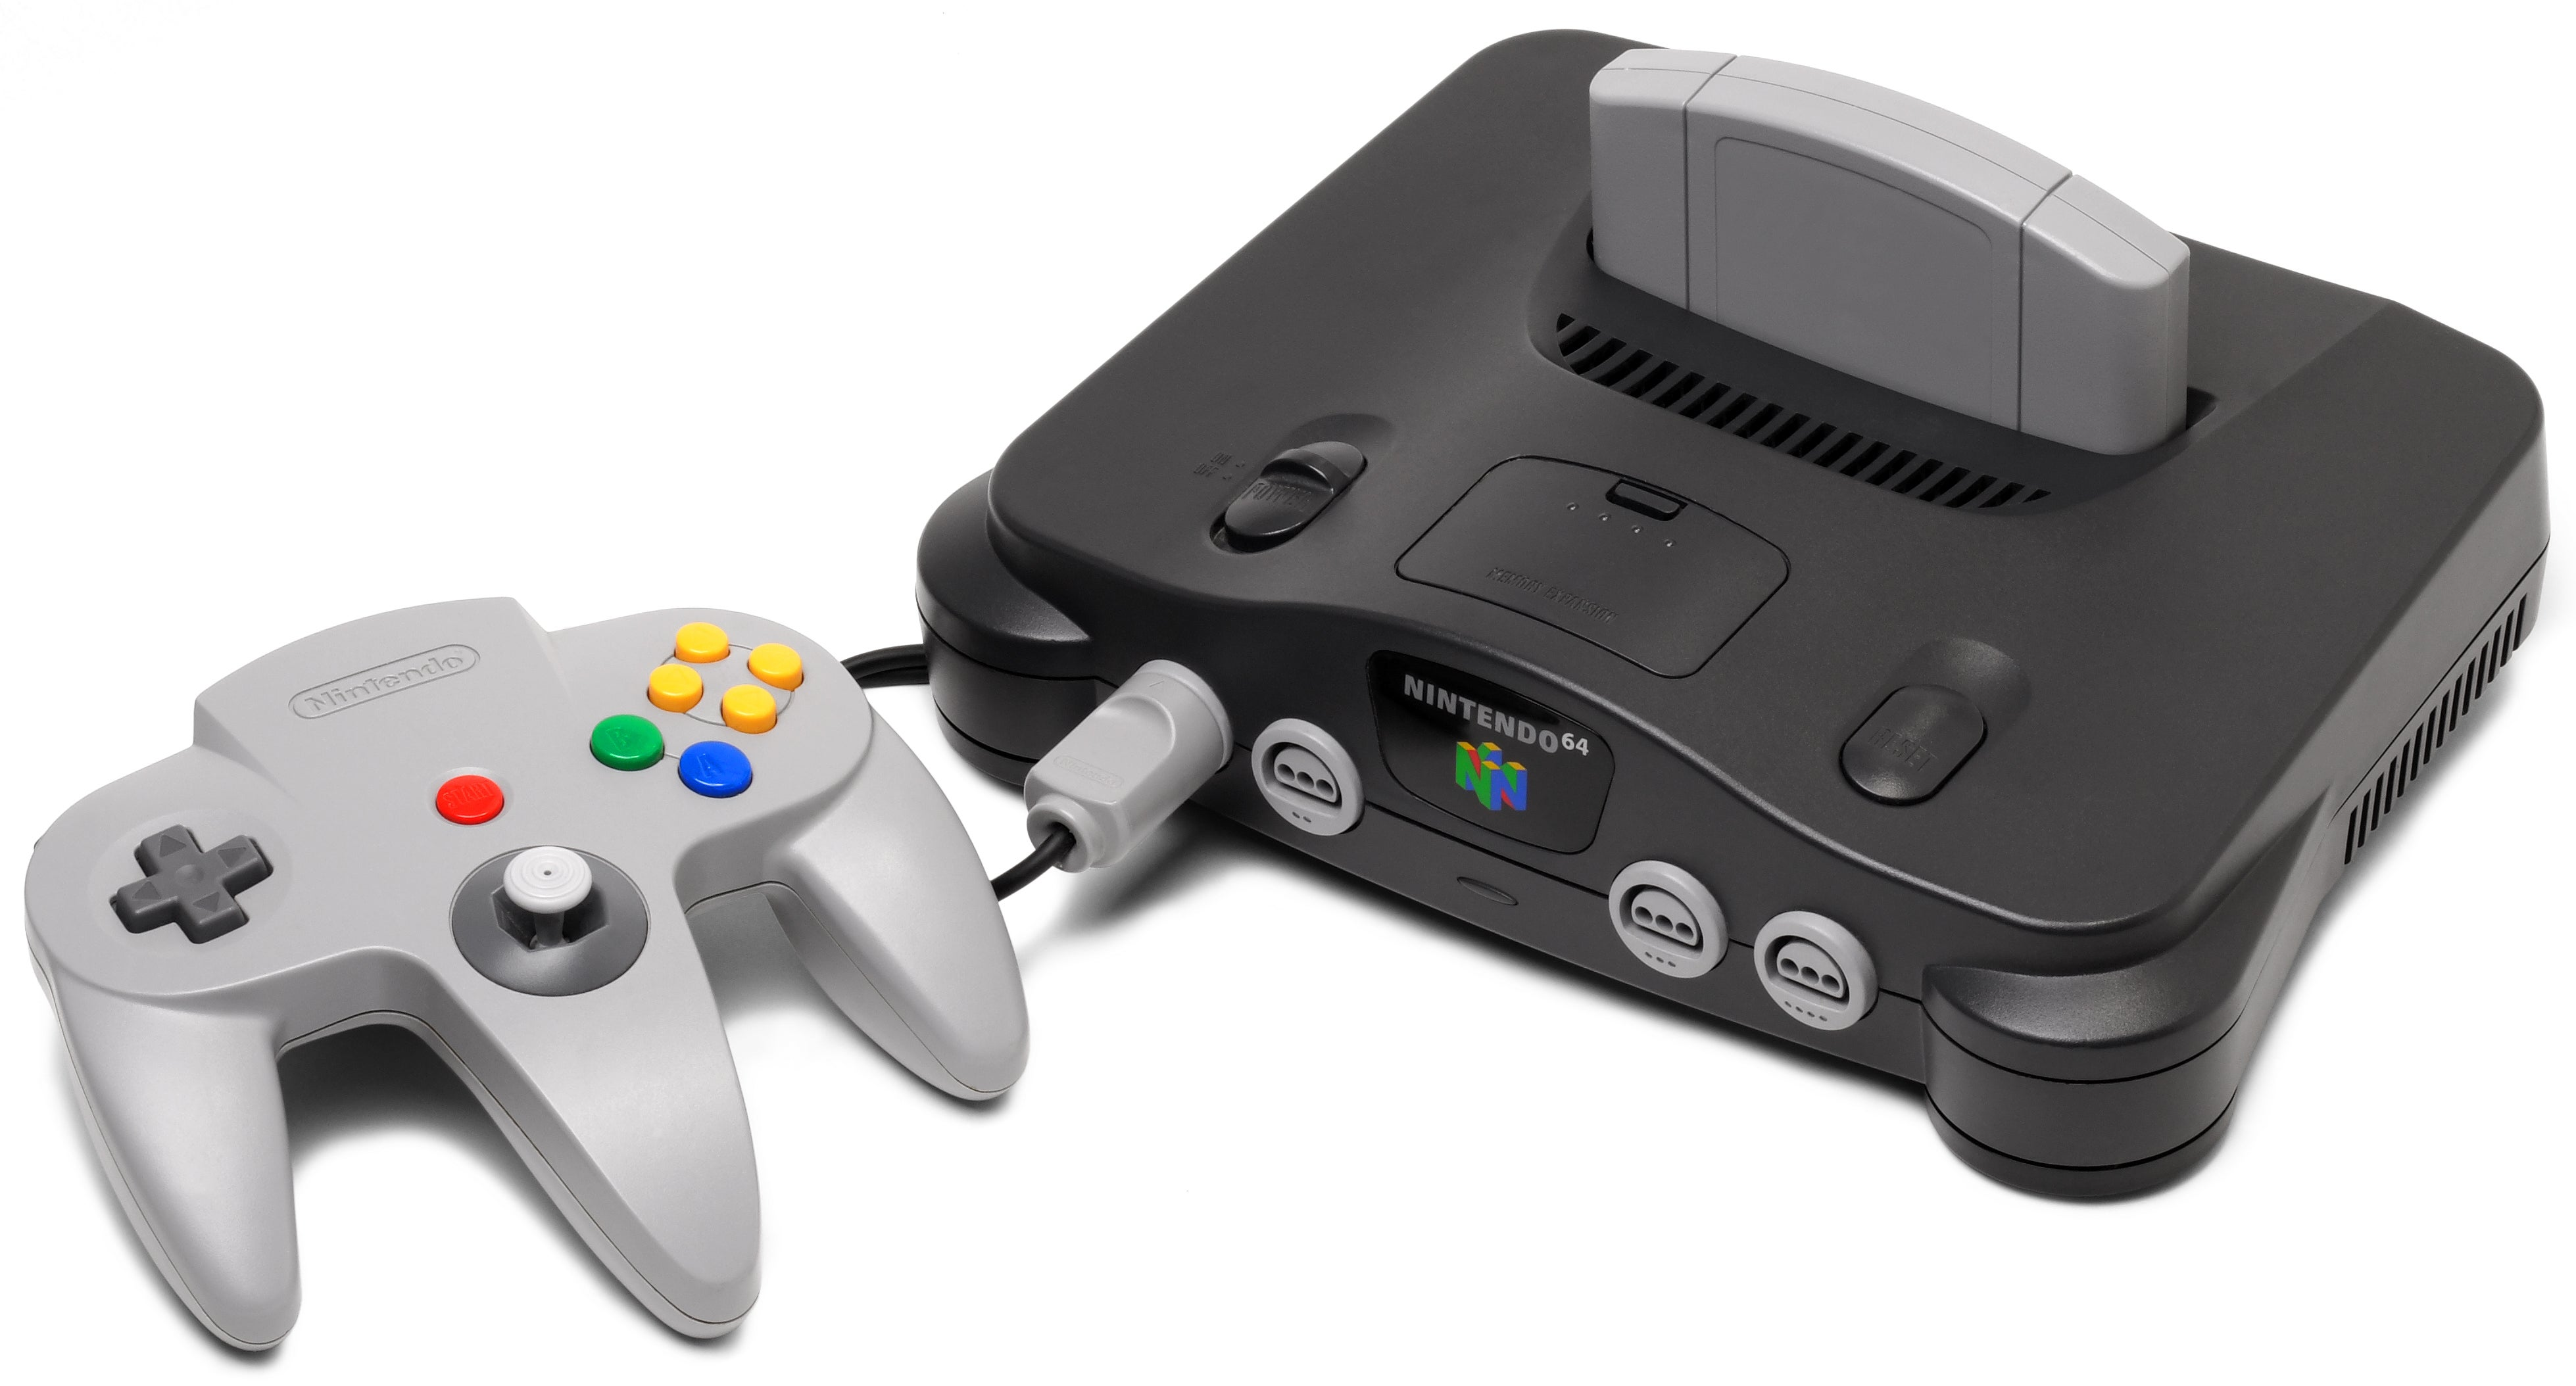 The Nintendo 64 Turns 20 Years Old Today